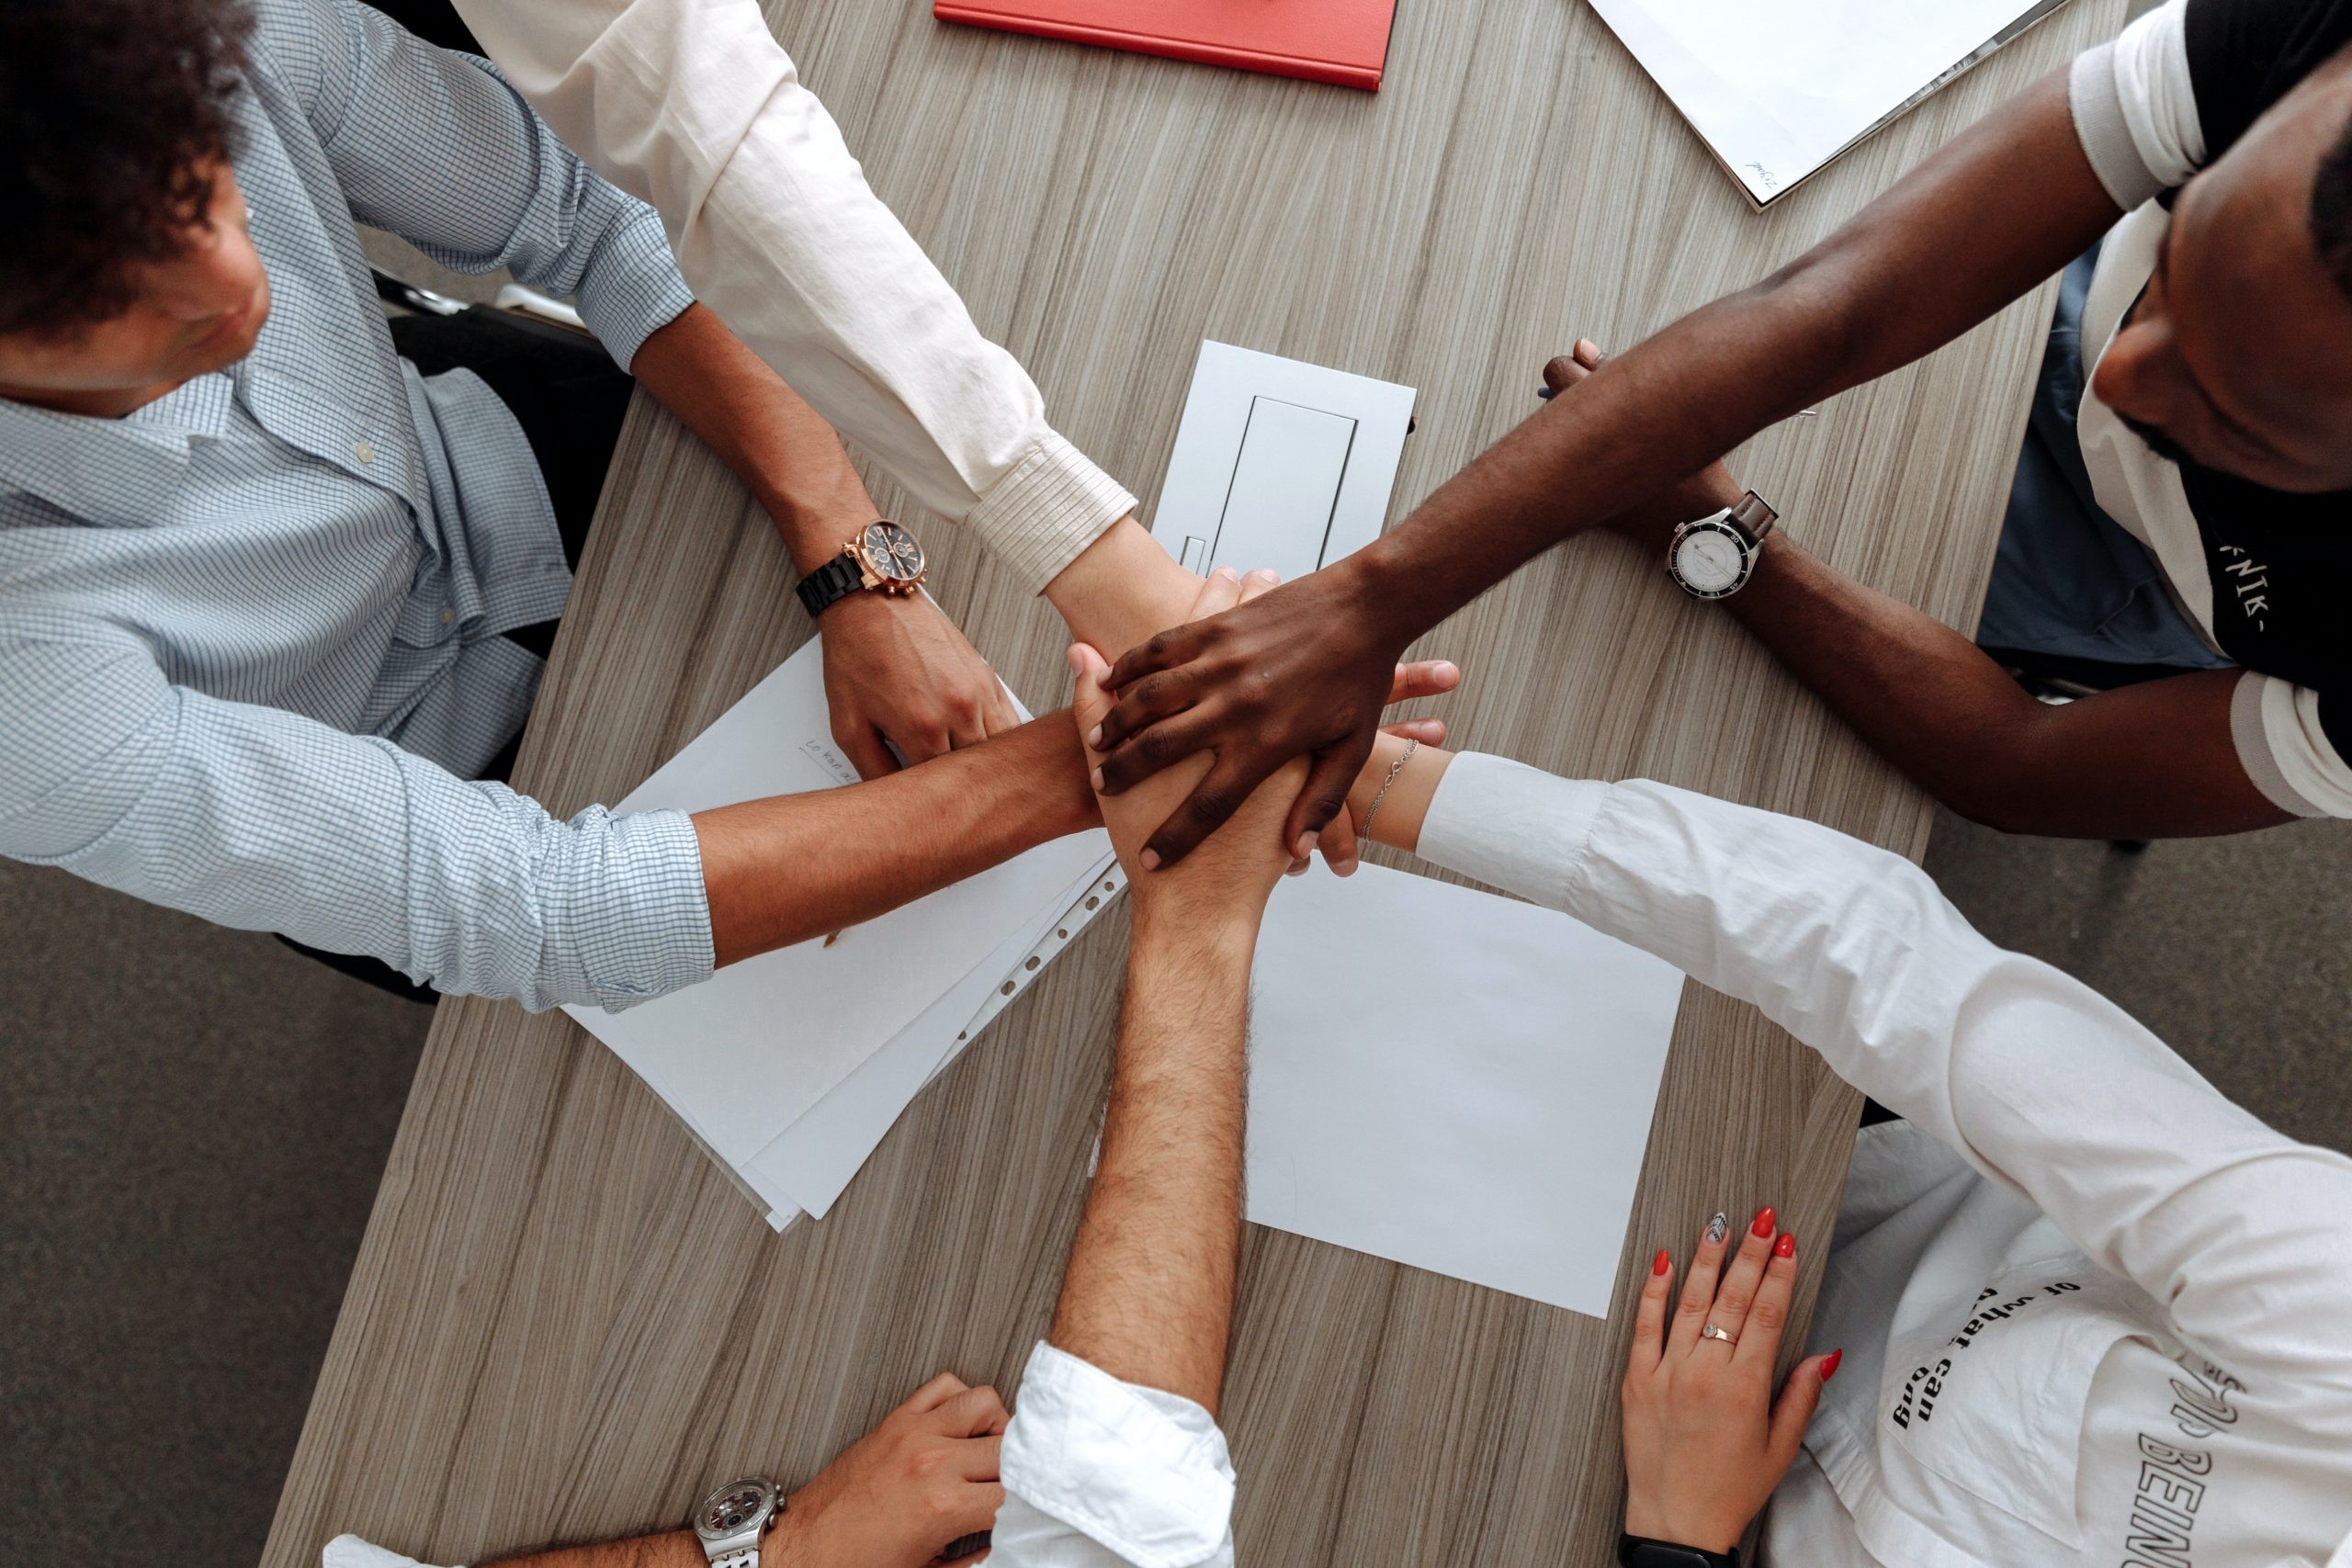 4 Reasons Why Mentorship In A Work Environment Is Impactful